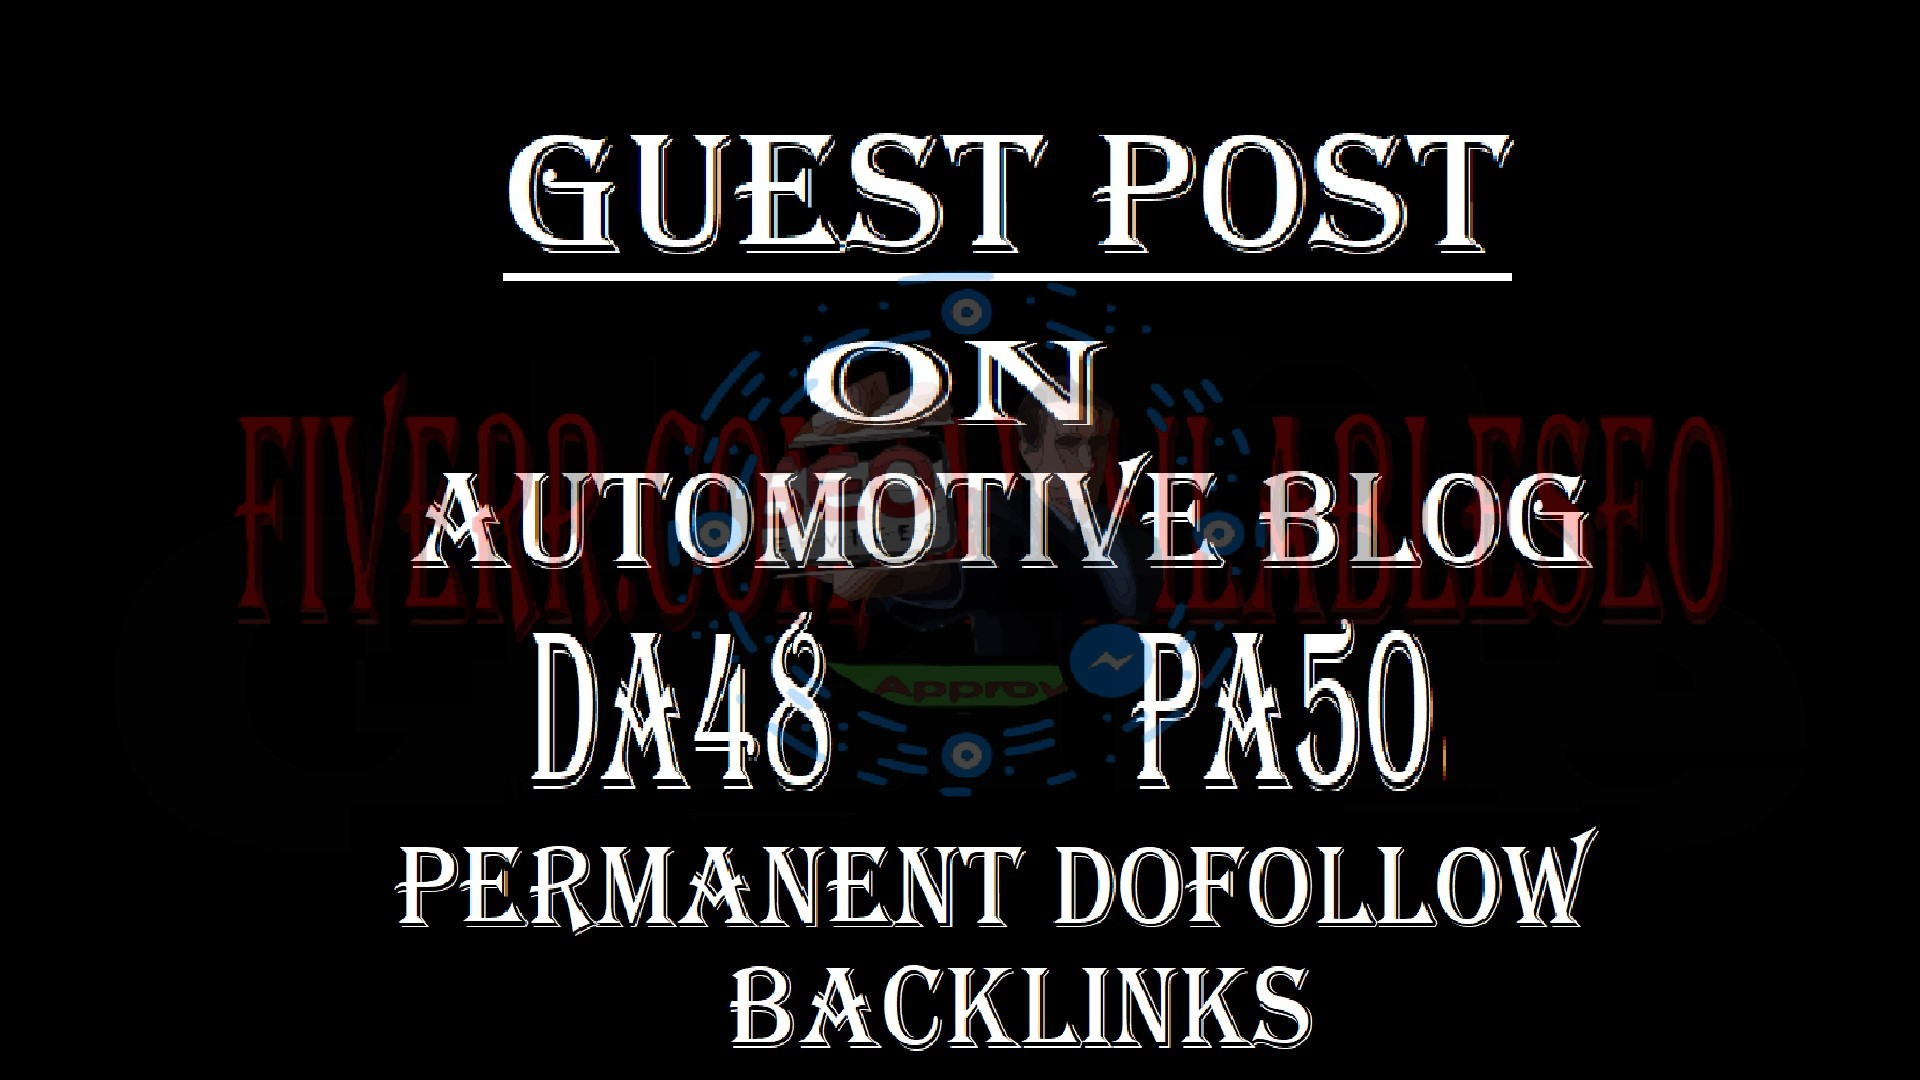 Do Publish Guest Post On Auto Blogging Site cardomain. com Da77